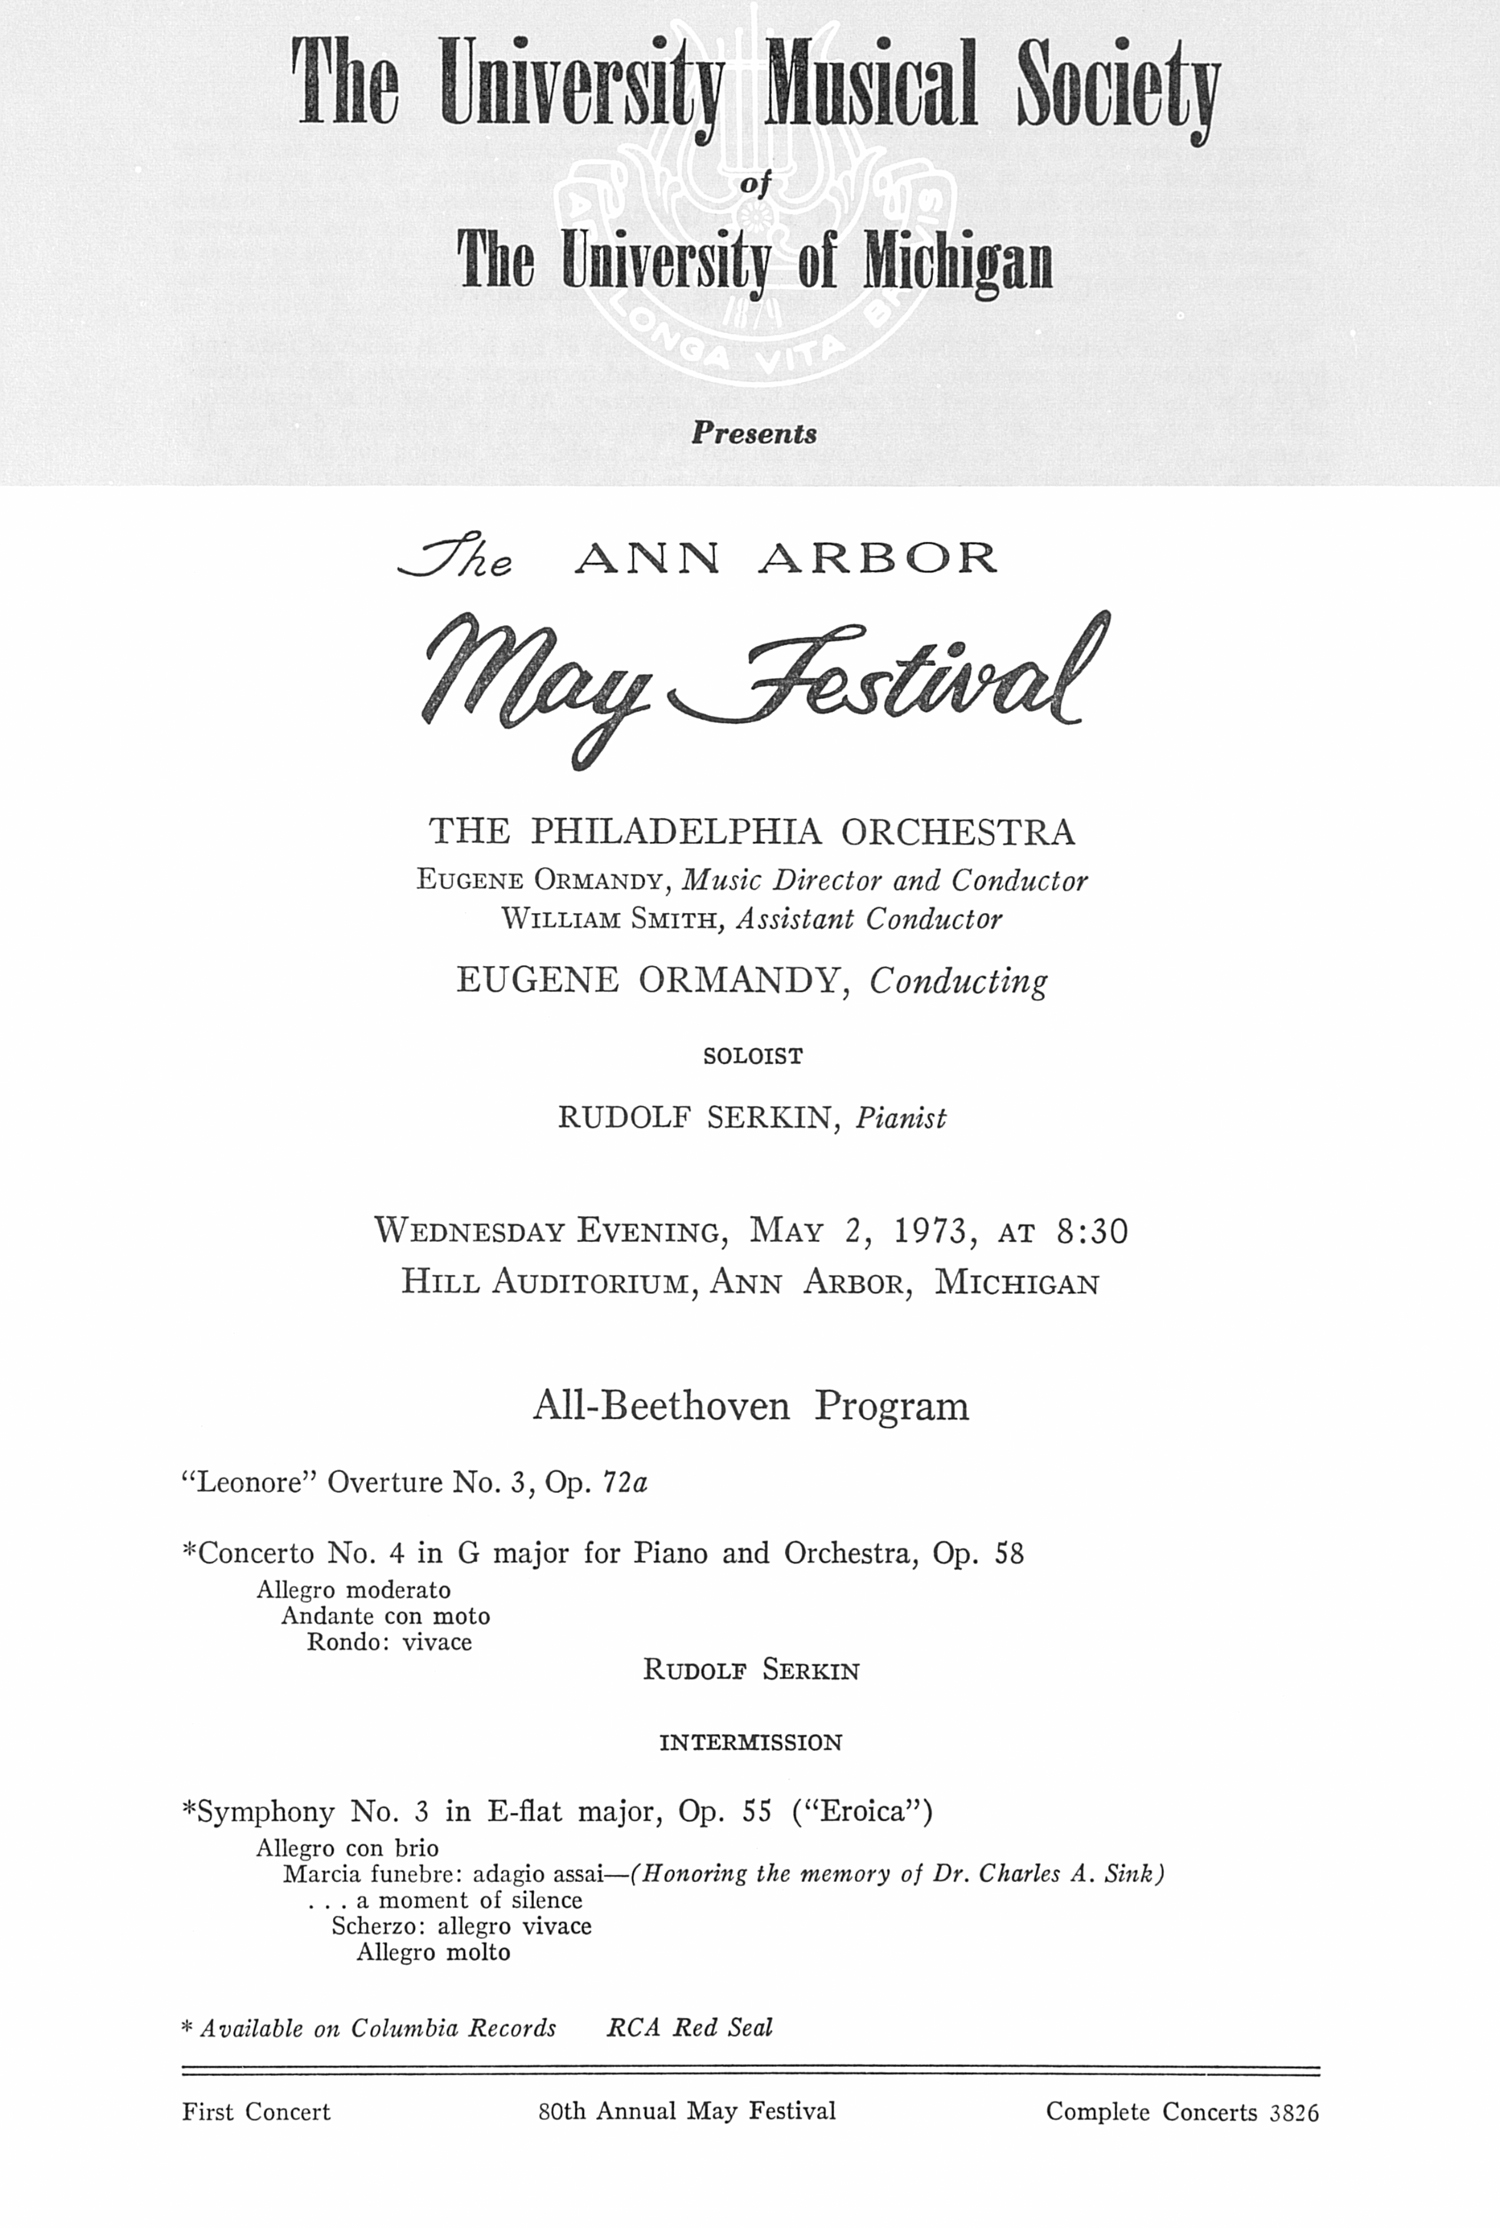 UMS Concert Program, May 2, 1973: The Ann Arbor May Festival -- Eugene Ormandy image